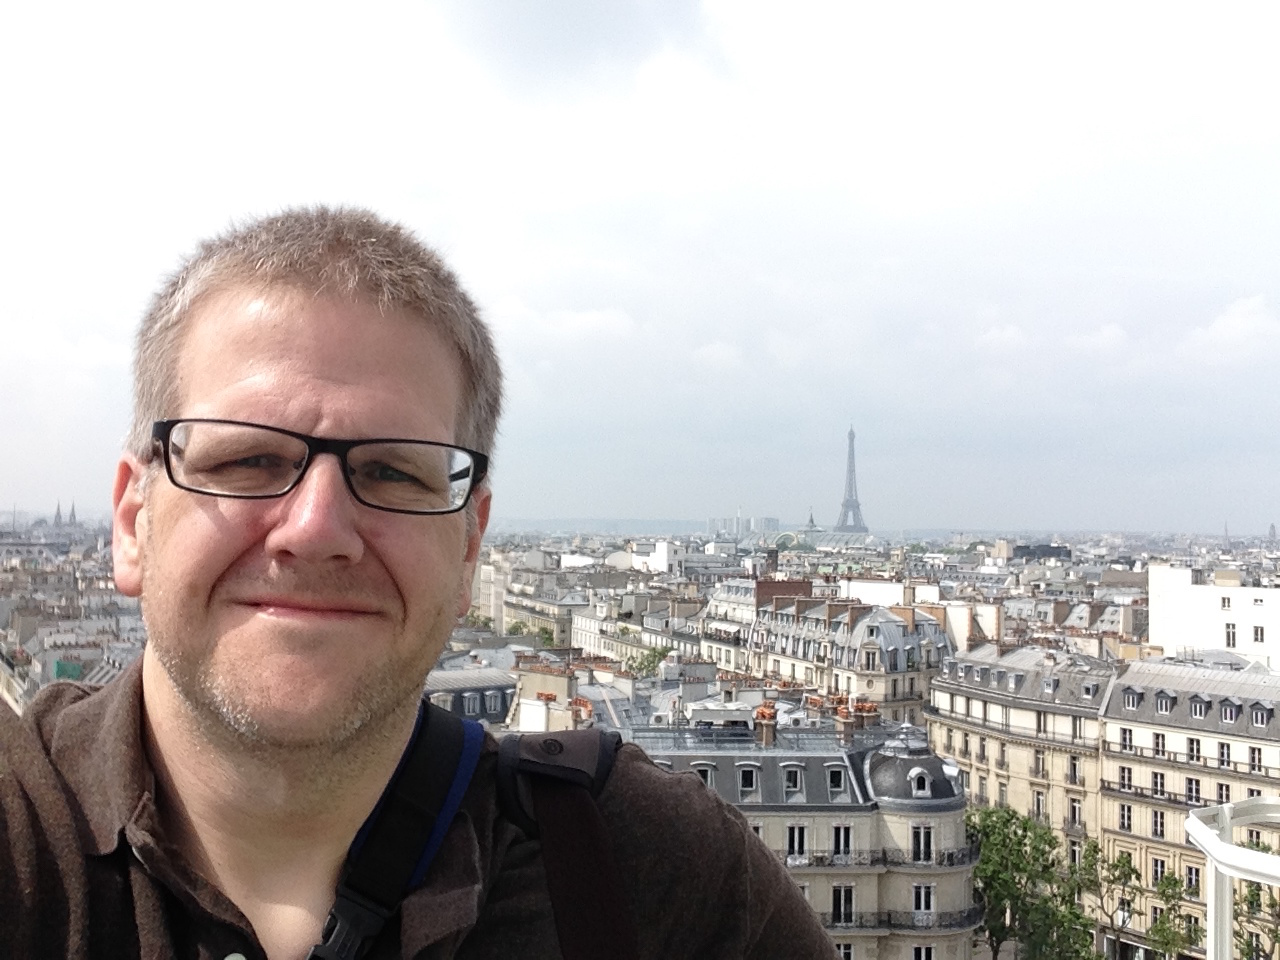 From the rooftop of thePrintemps department store in Paris.